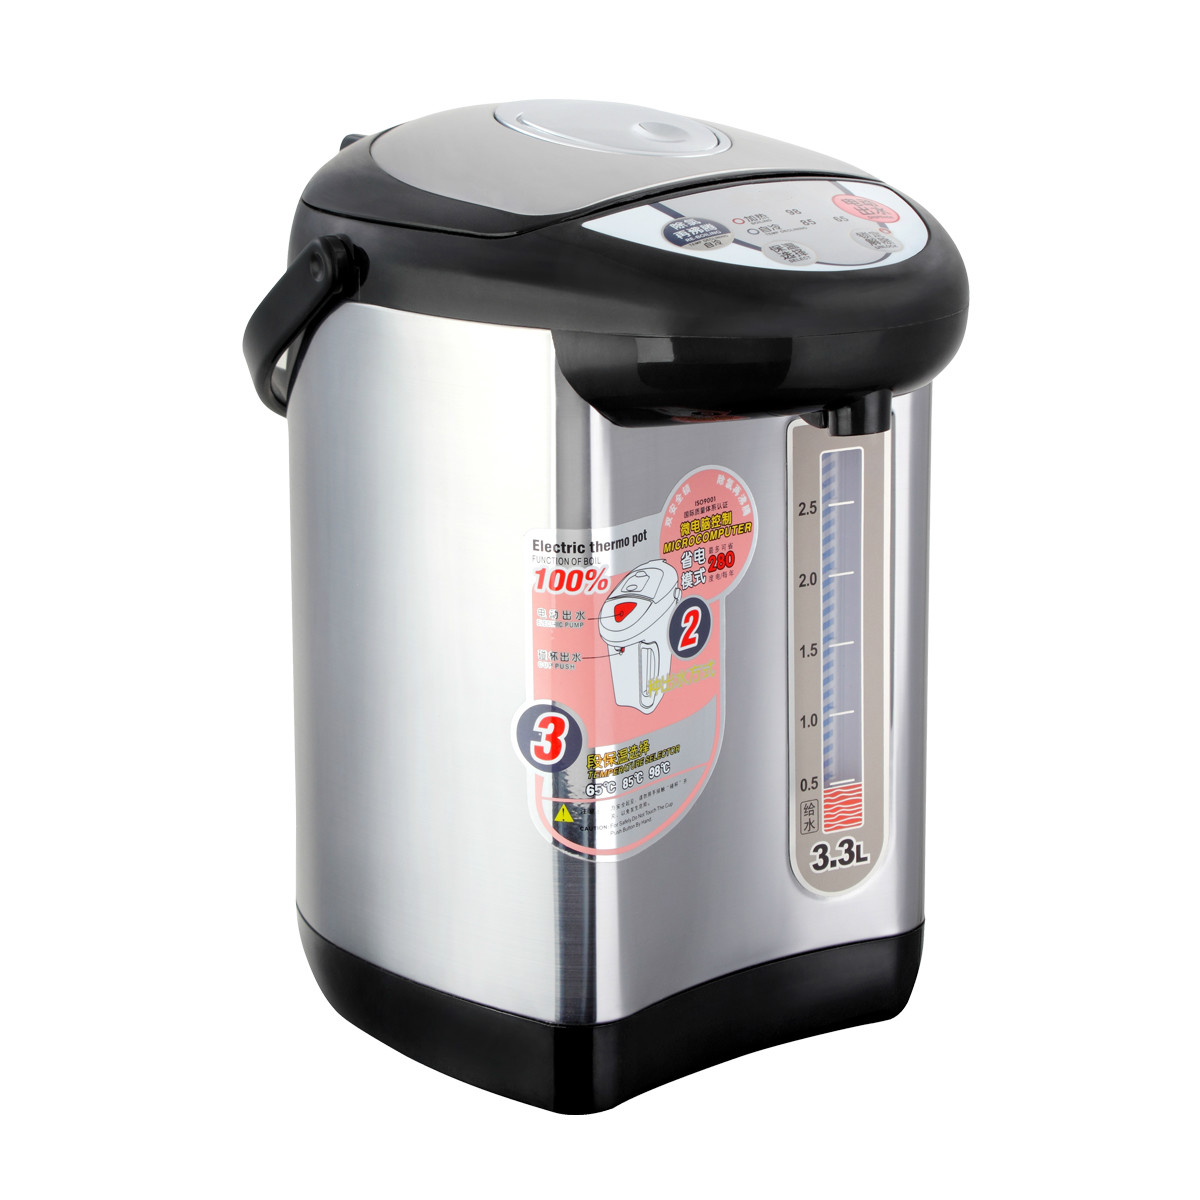 Electric kettle Thermoelectric stainless steel boiling water kettles automatic insulation large  bottles Overheat Protection electric kettle thermos water bottle is an integral automatic insulation kettle 304 stainless steel kettles home